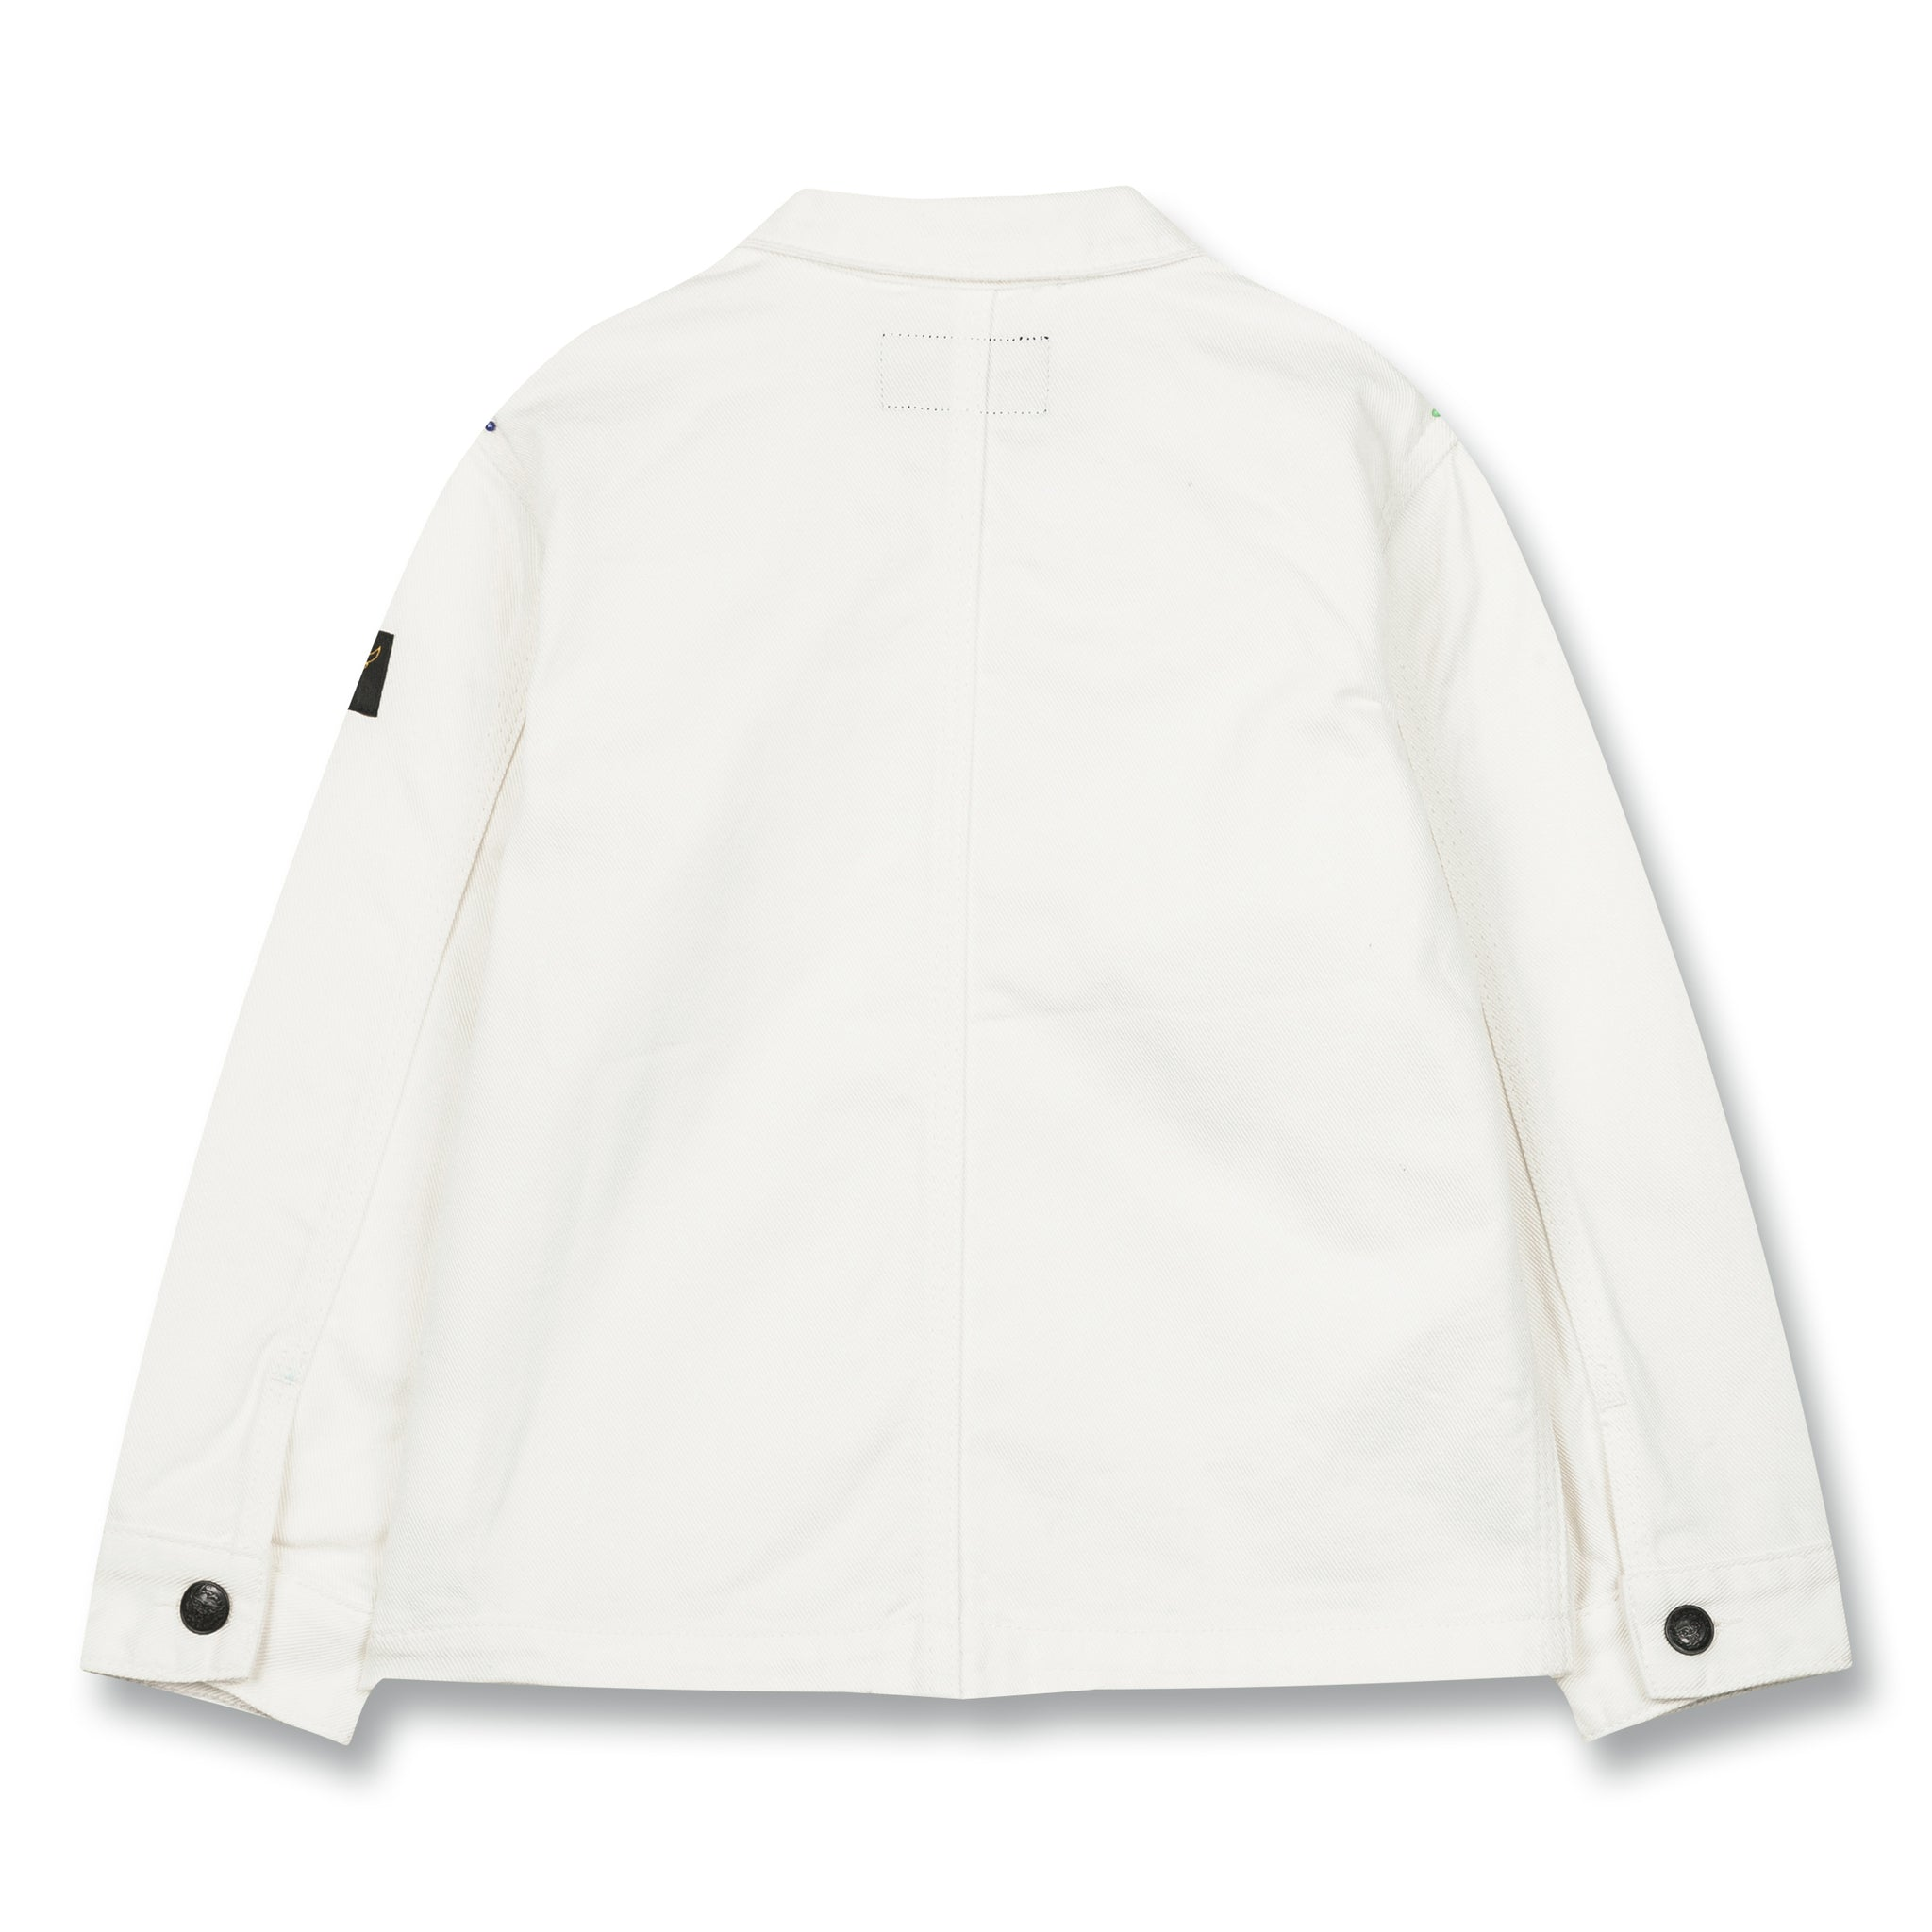 WARREN White - Multipocket Worker Jacket 3